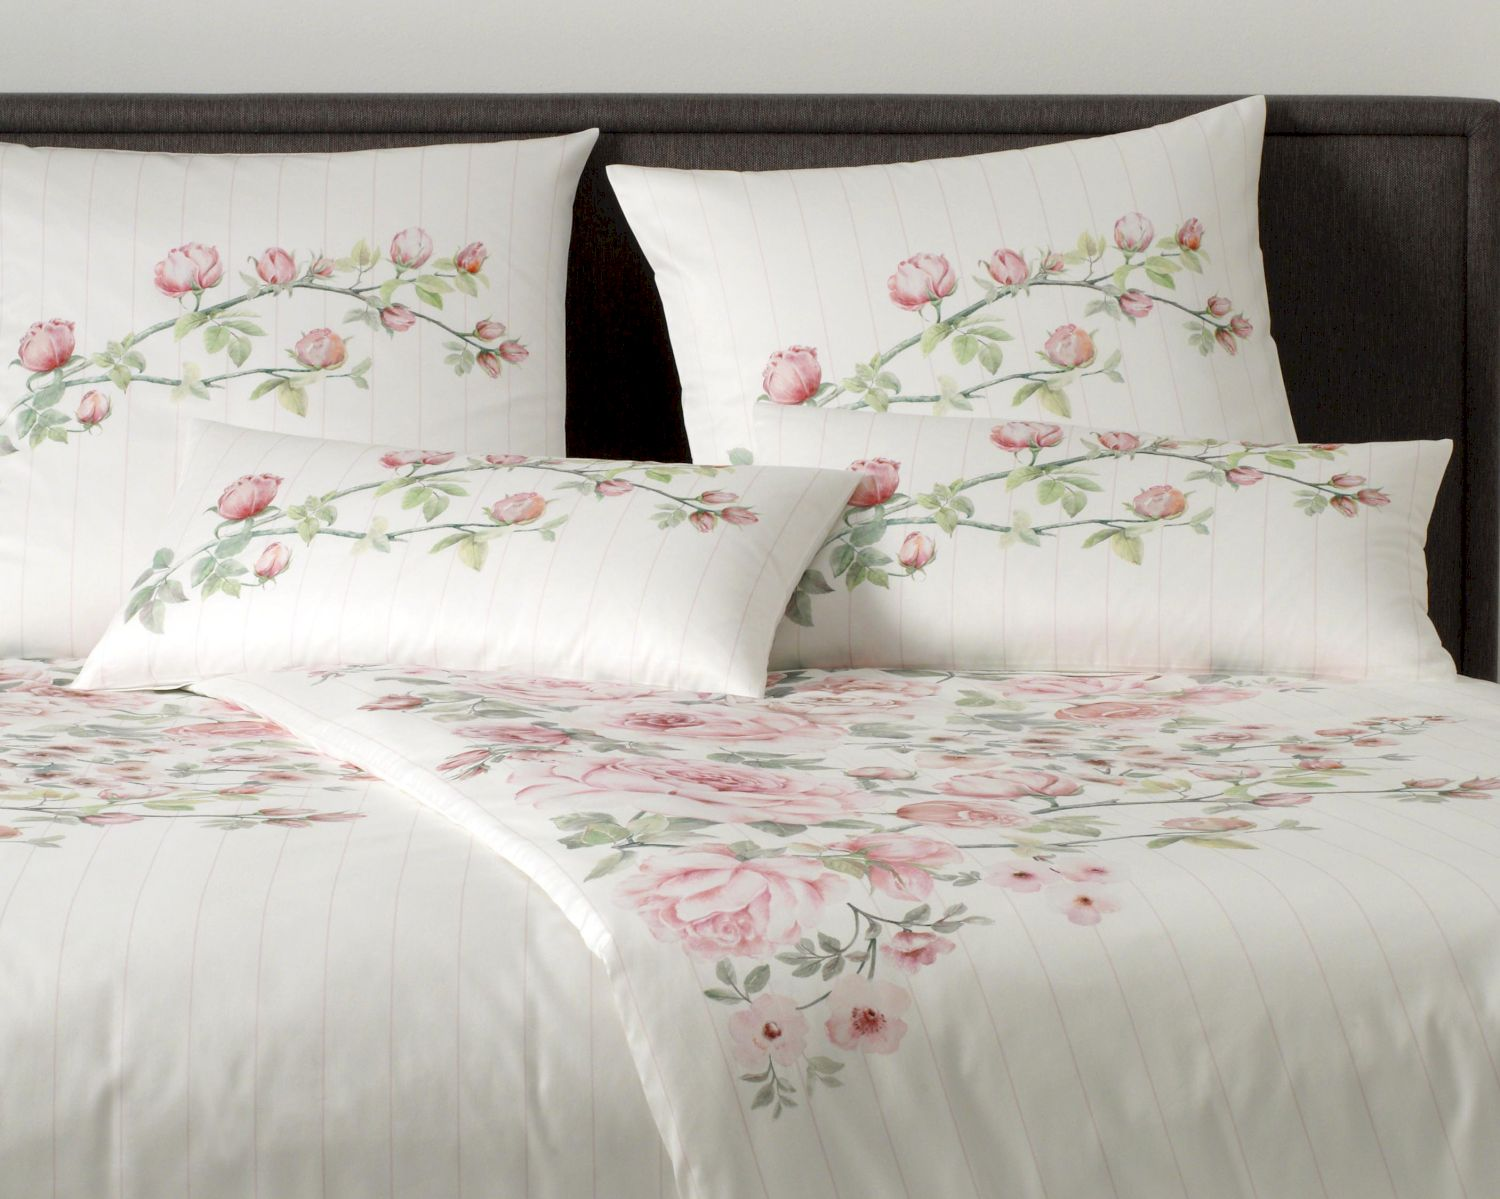 Elegance Bettwäsche Elegante Comfort Satin Bettwäsche Princess Rose 2186 1